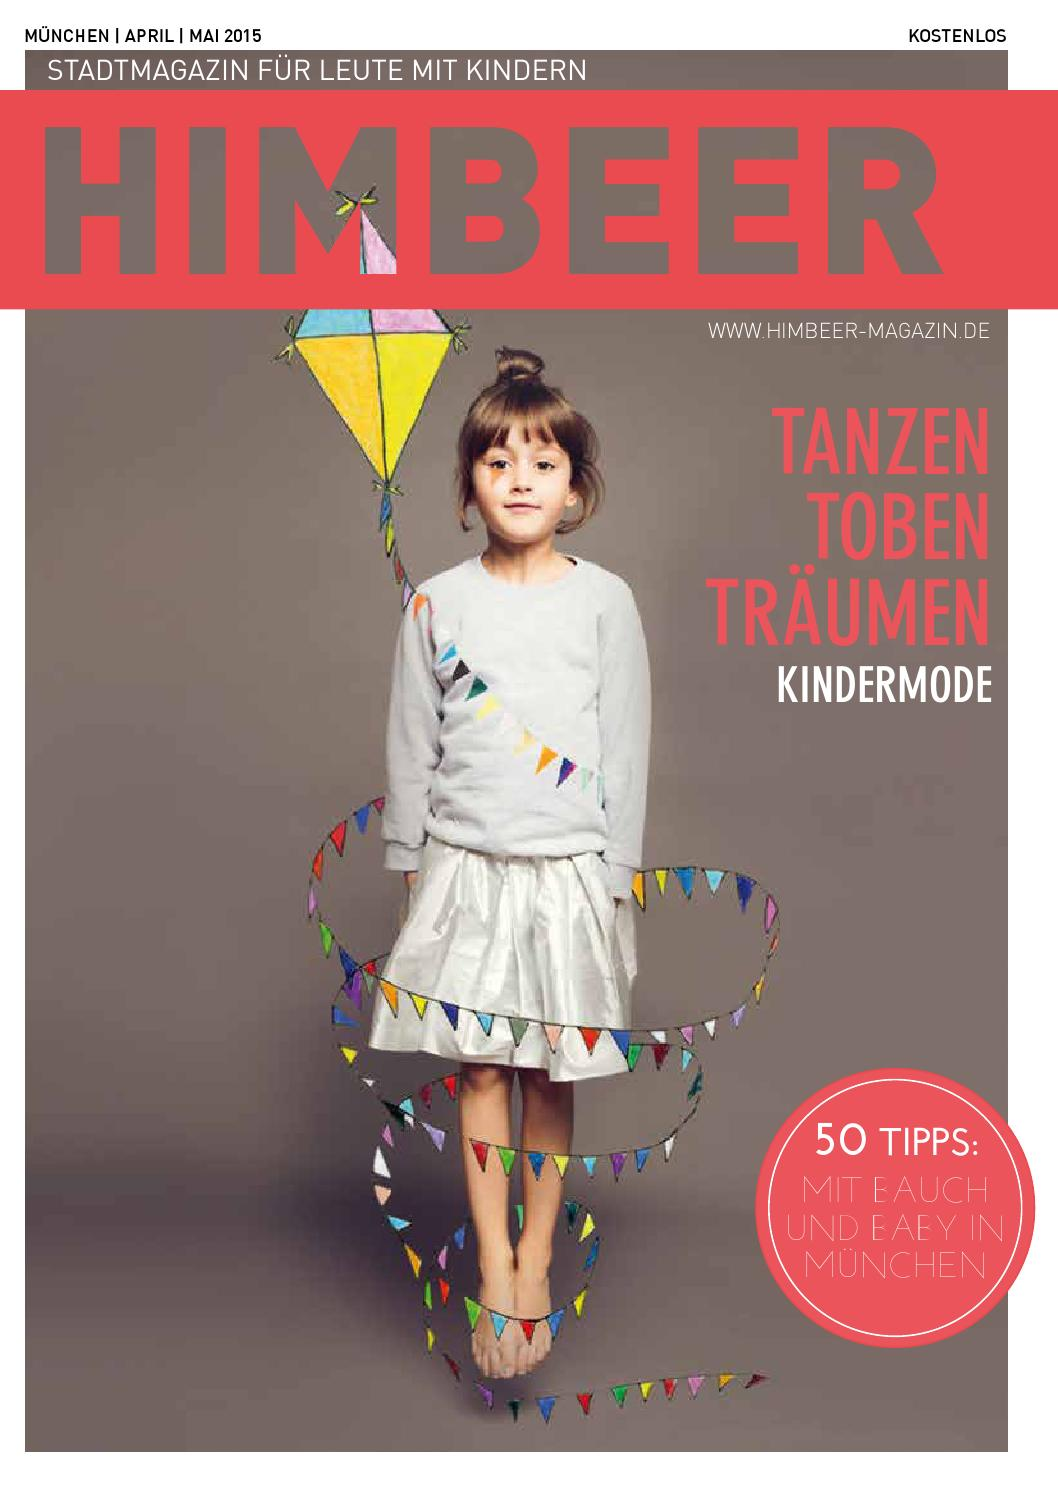 HIMBEER MÜNCHEN APR MAI 2015 by HIMBEER Verlag - issuu